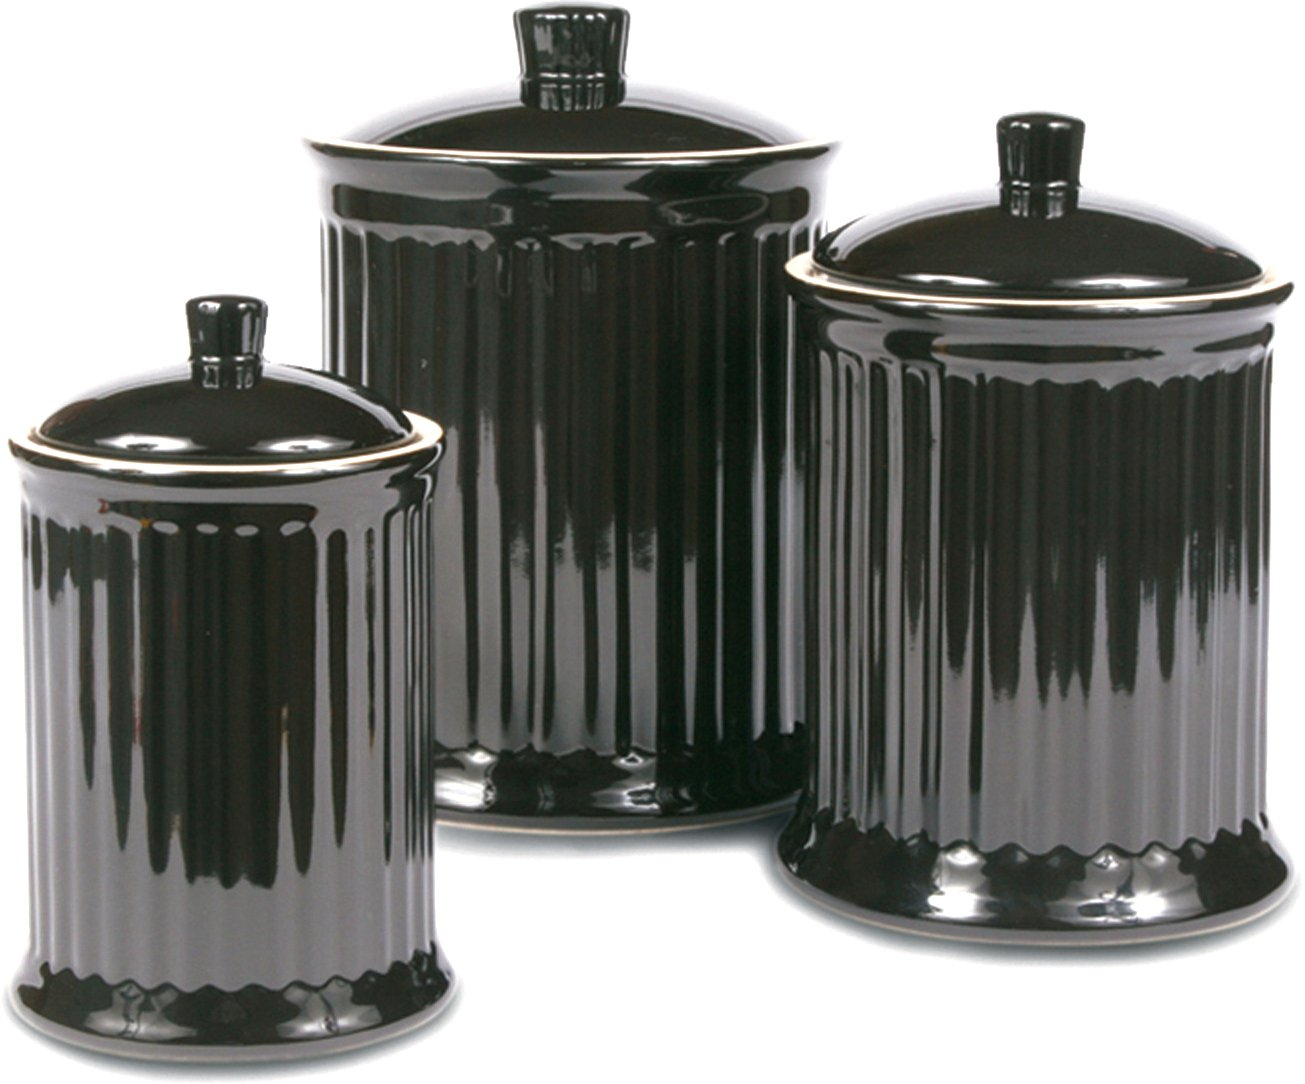 amazon com omniware simsbury black stoneware canister set of 3 amazon com omniware simsbury black stoneware canister set of 3 kitchen storage and organization product sets kitchen dining